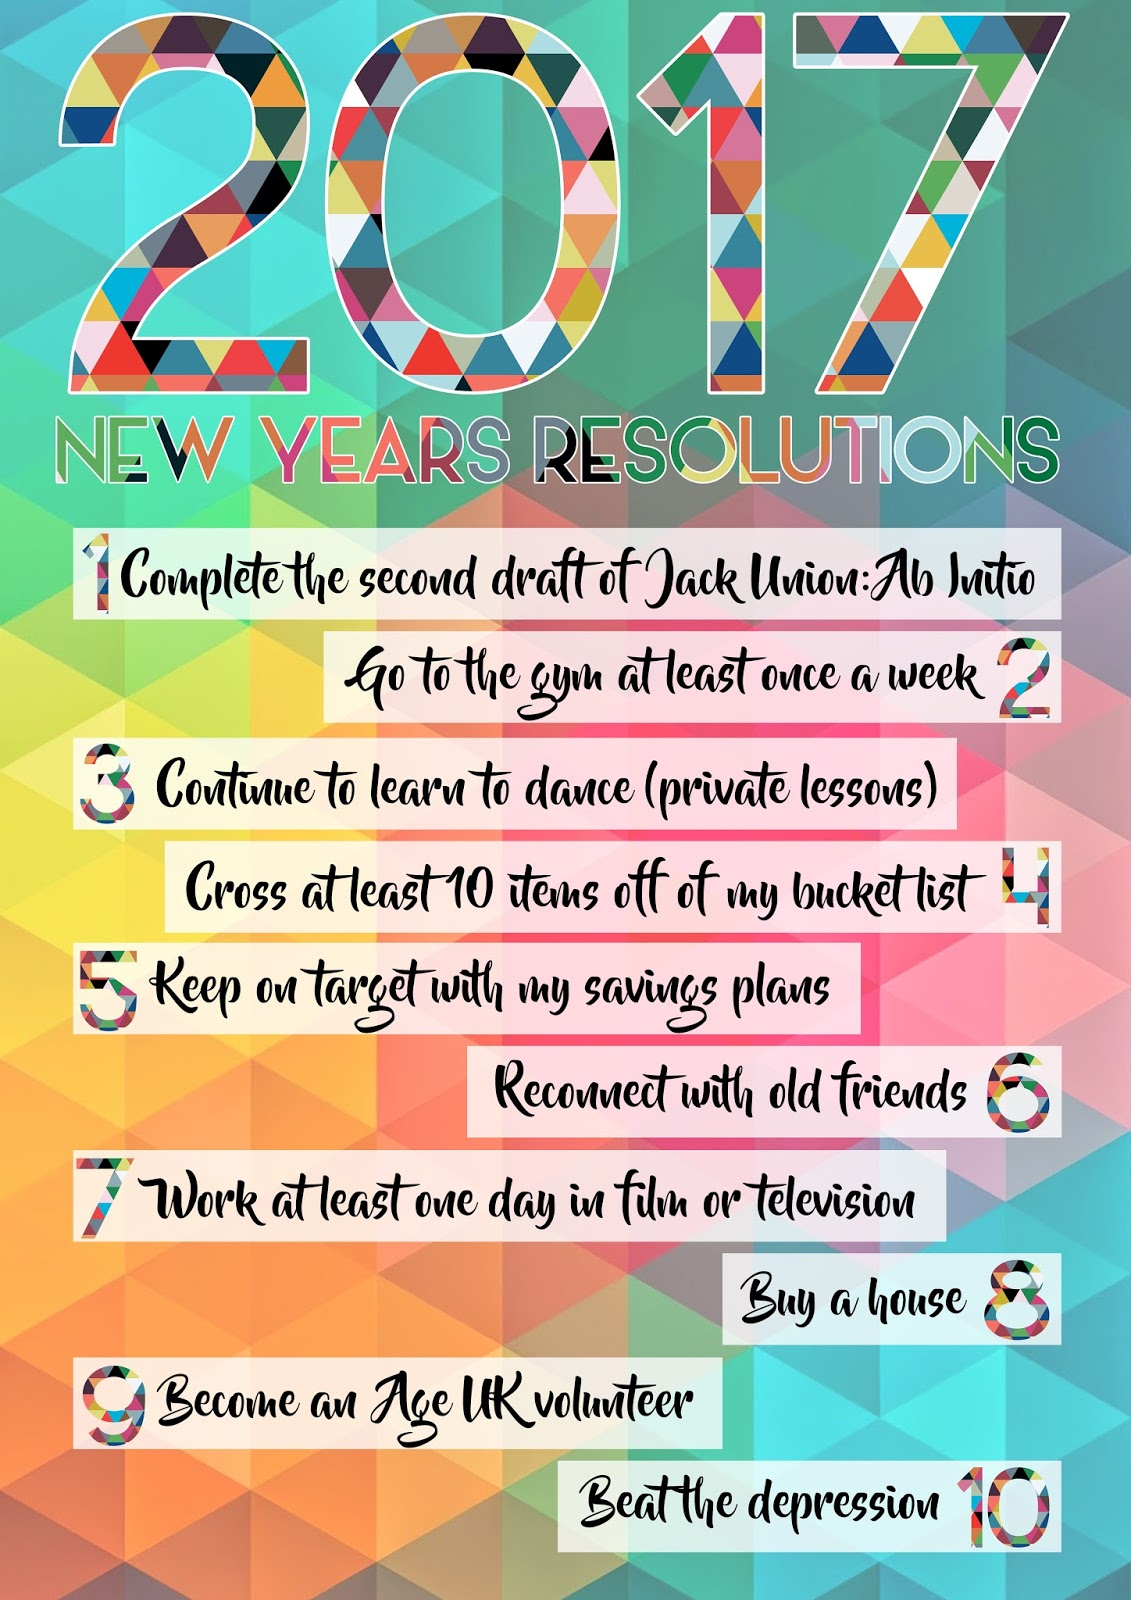 Watch 10 Reasons Why New Year's Resolutions Fail video